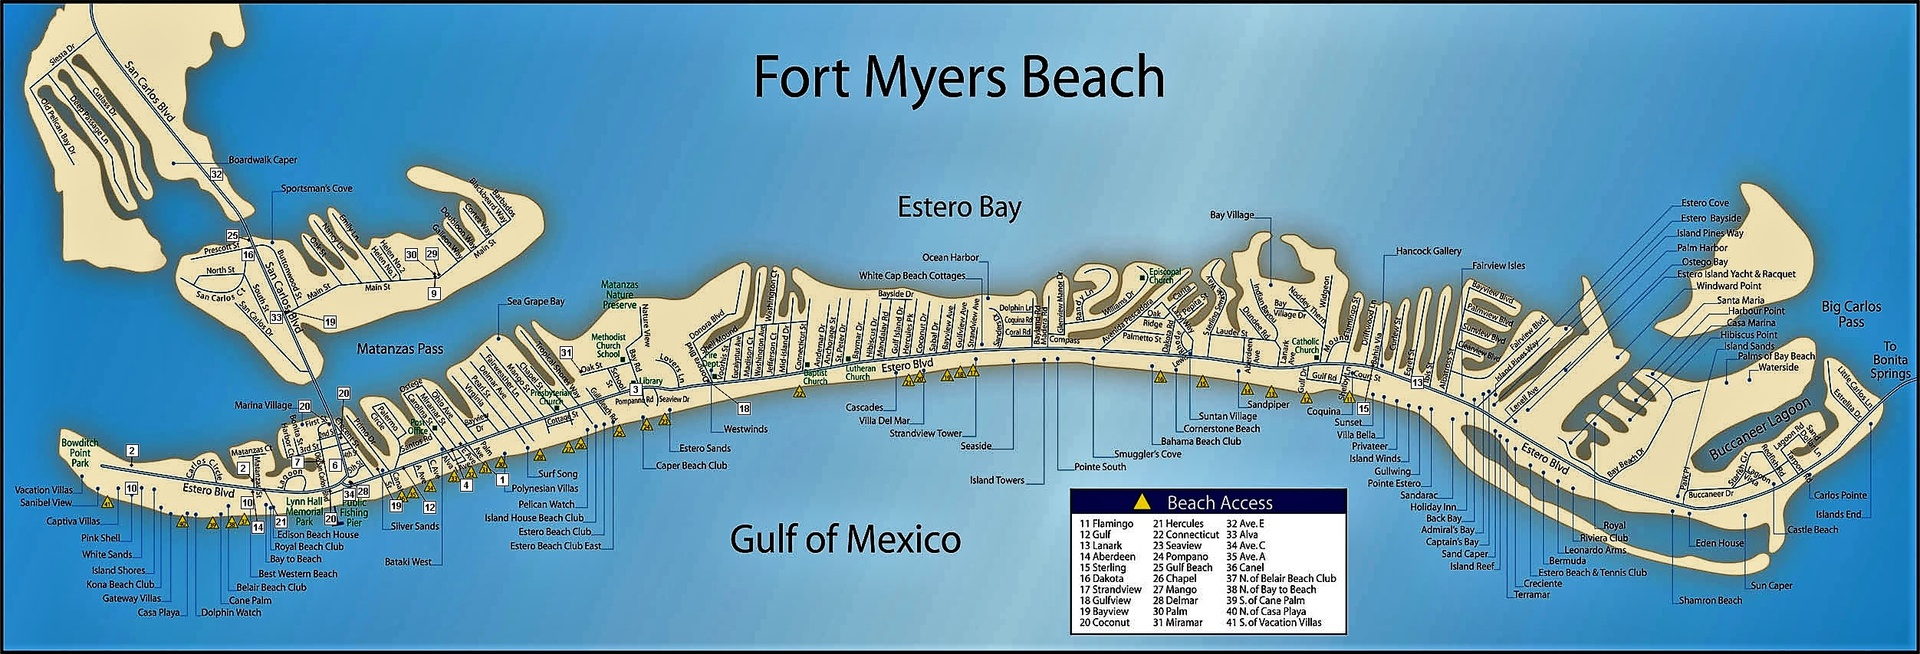 Fort Myers Beach Street Map | The Best Beaches In The World - Street Map Of Fort Myers Florida